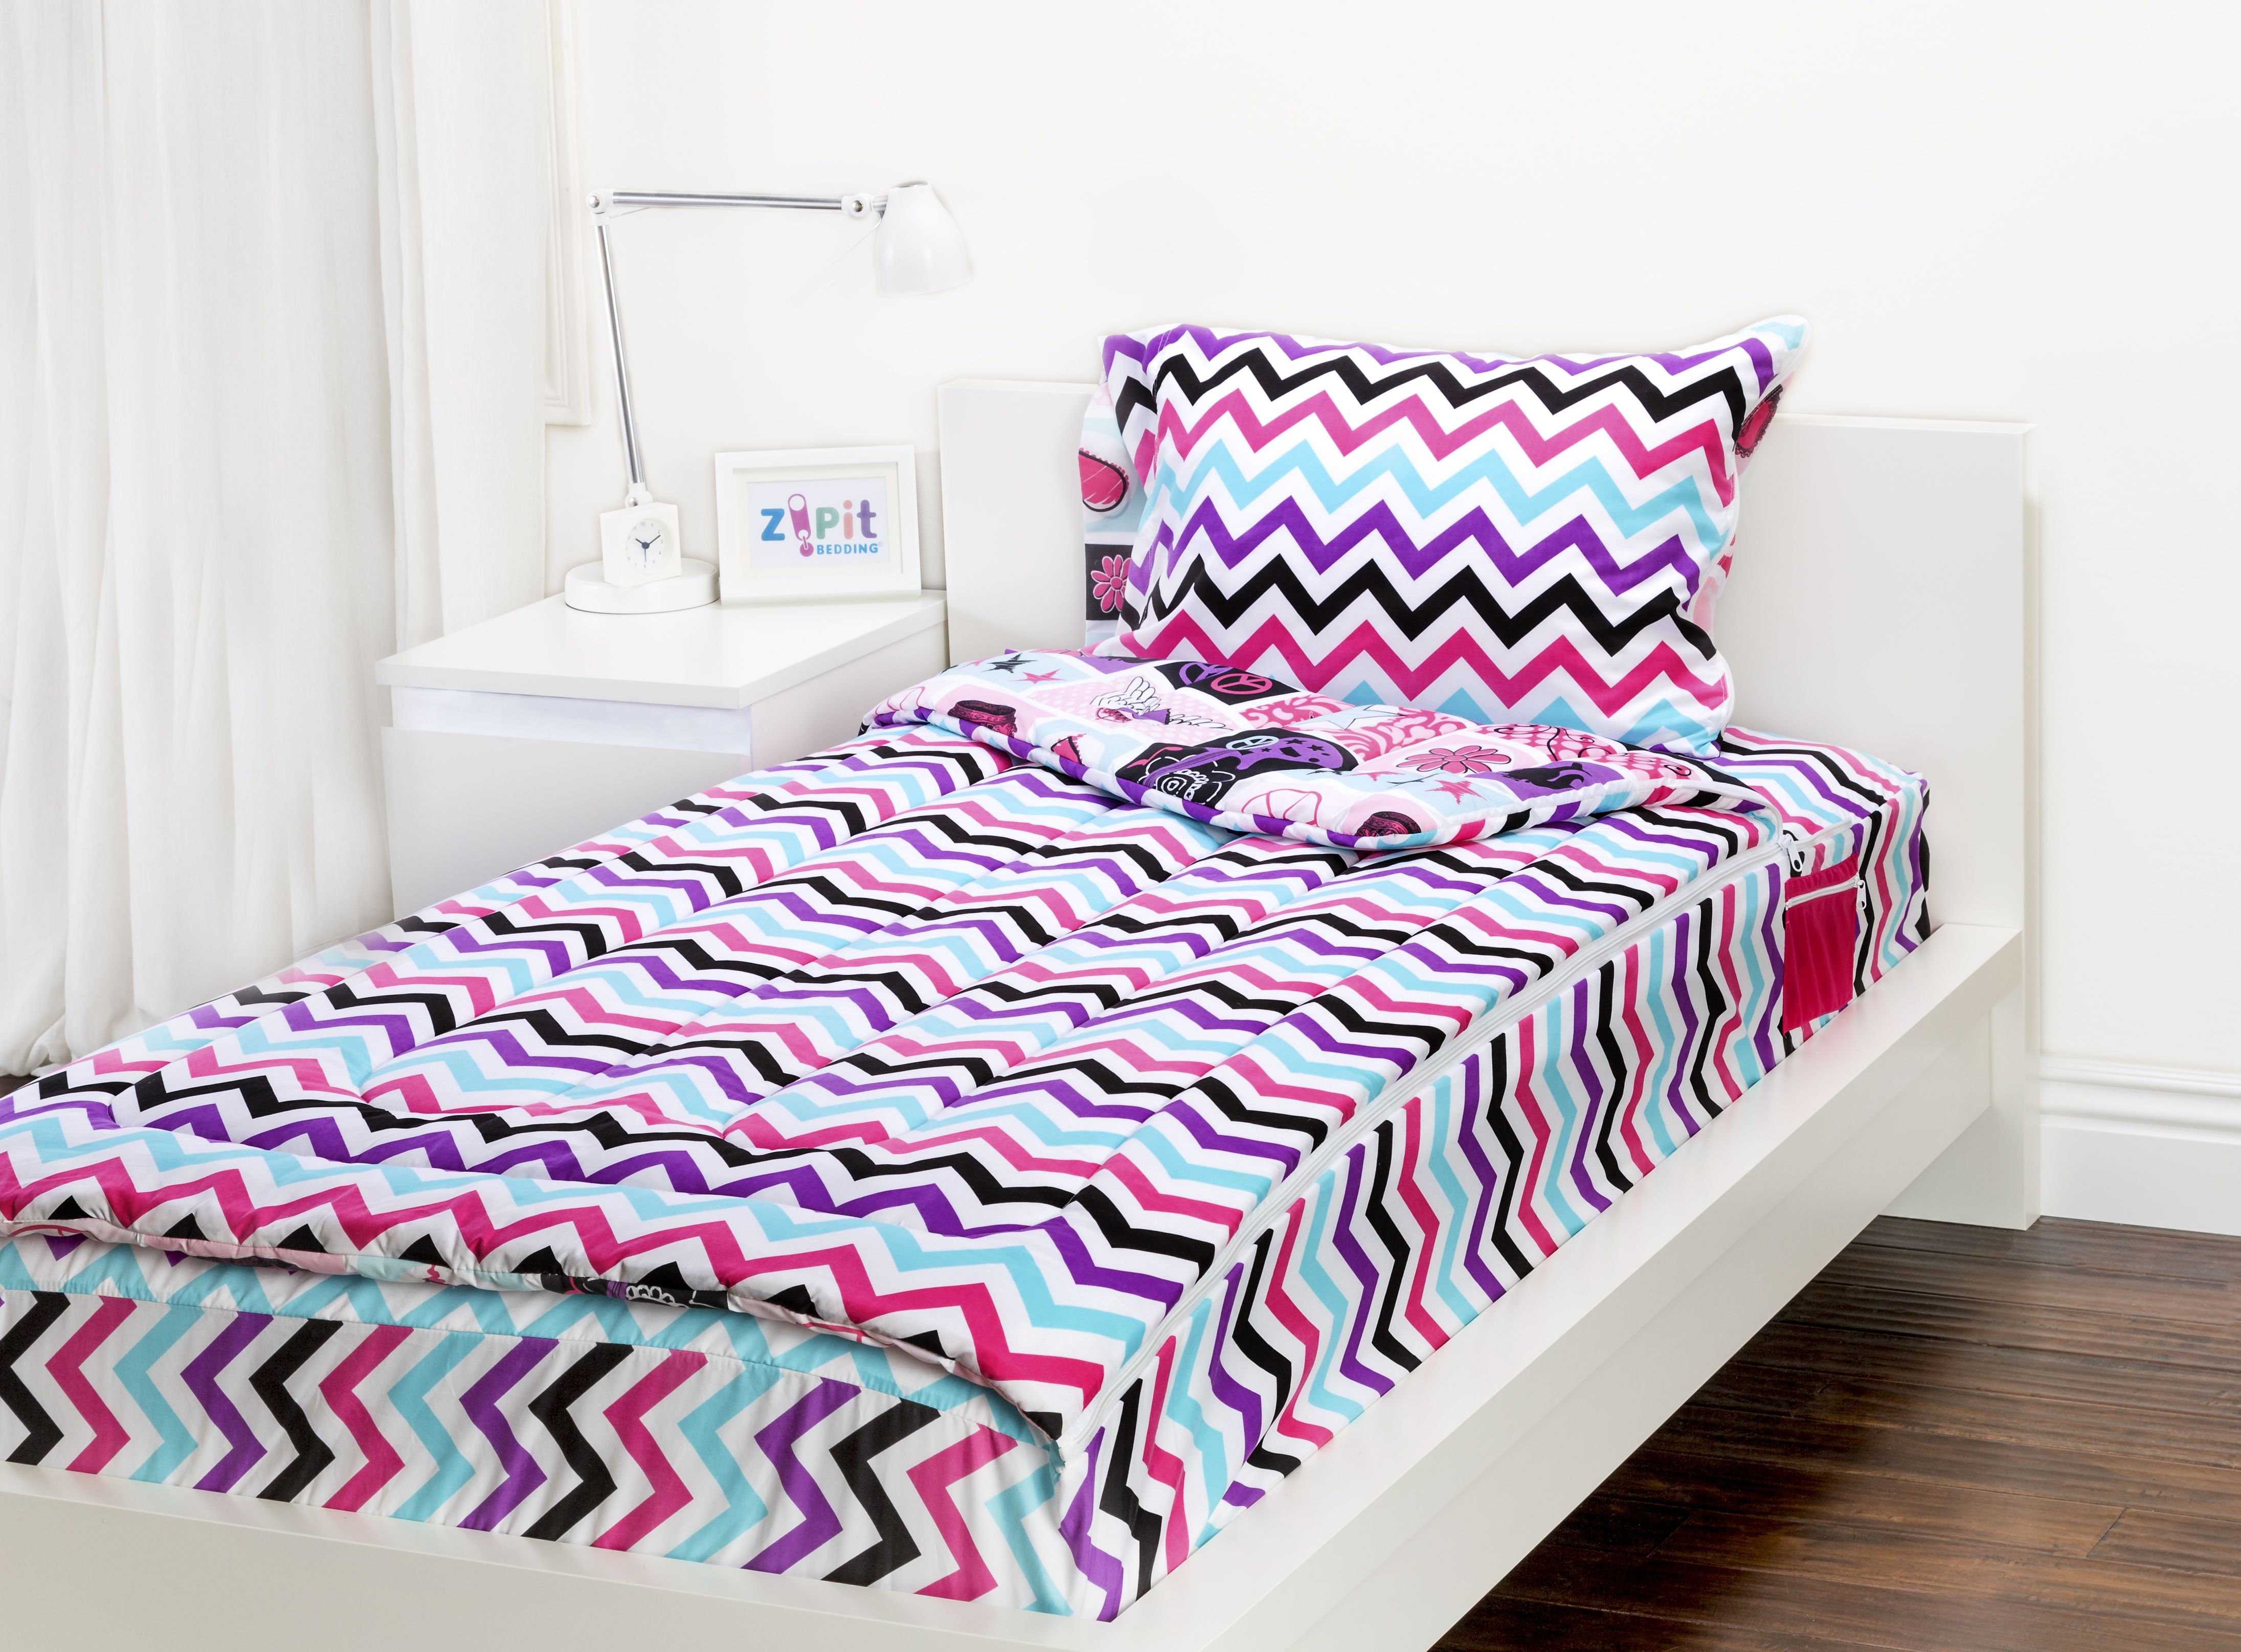 The Rocker Princess Zipit Bedding Set is reversible Zipit Bedding